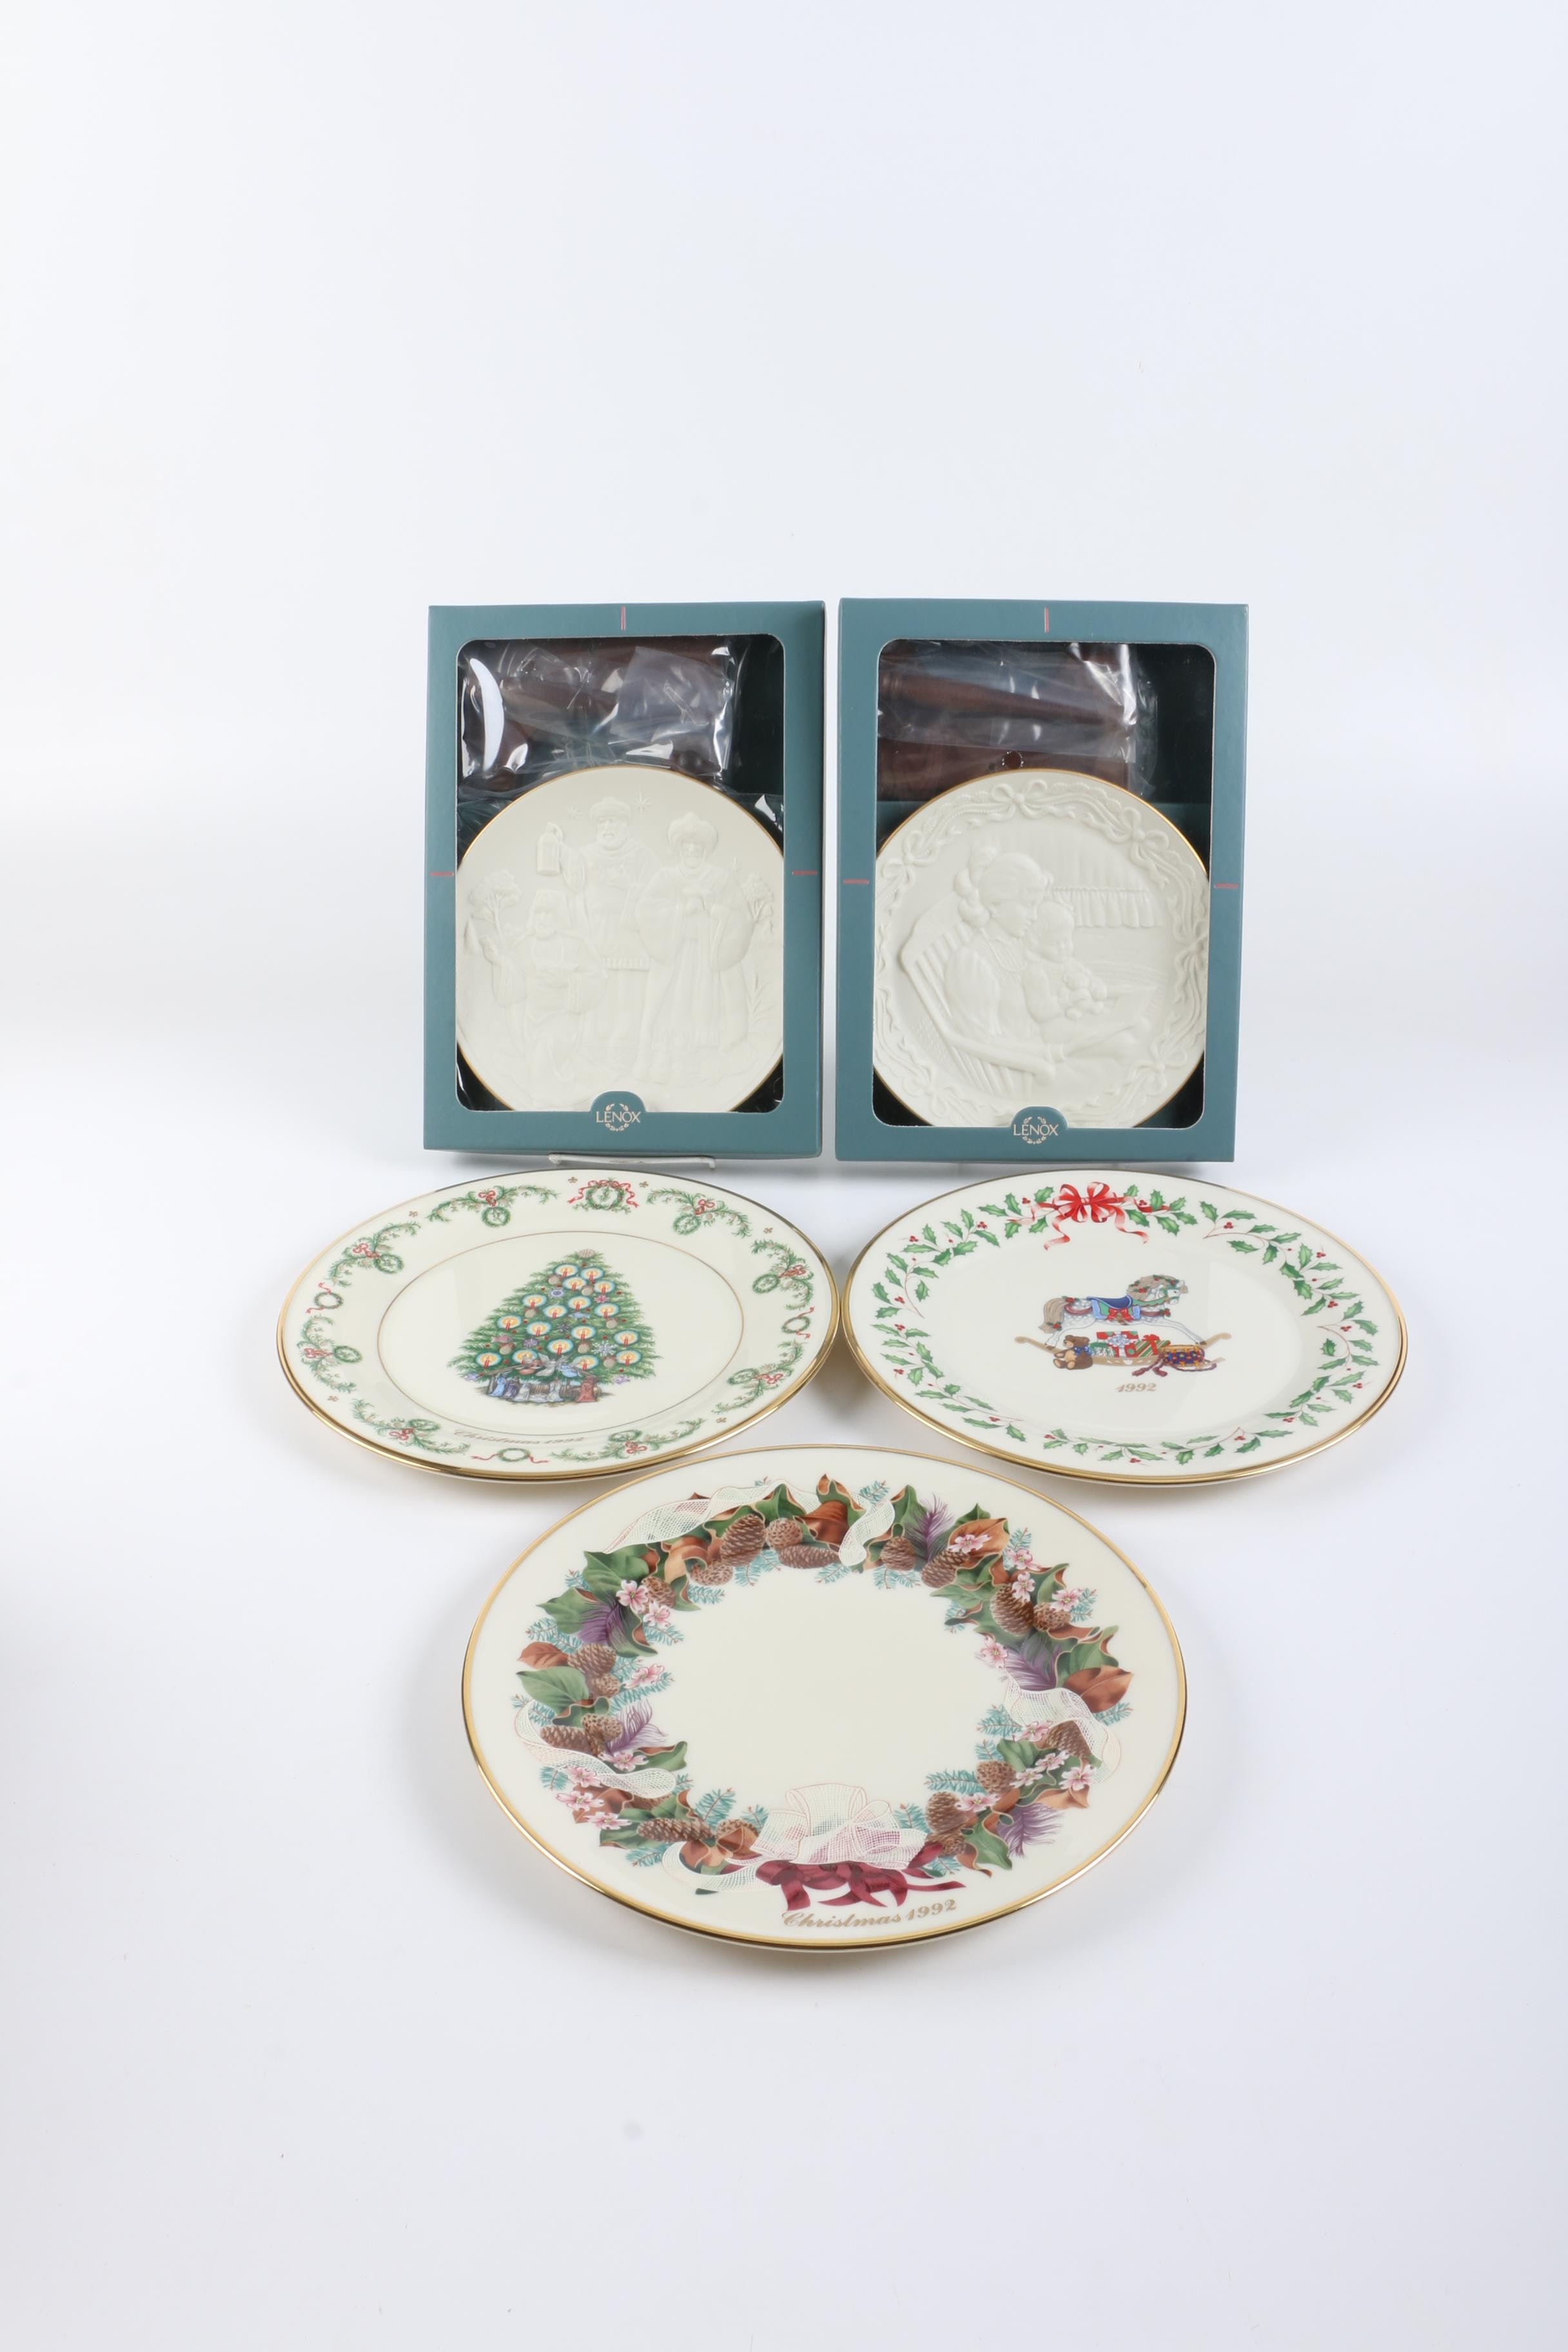 1990s Lenox Limited Edition Collector's Christmas Plates